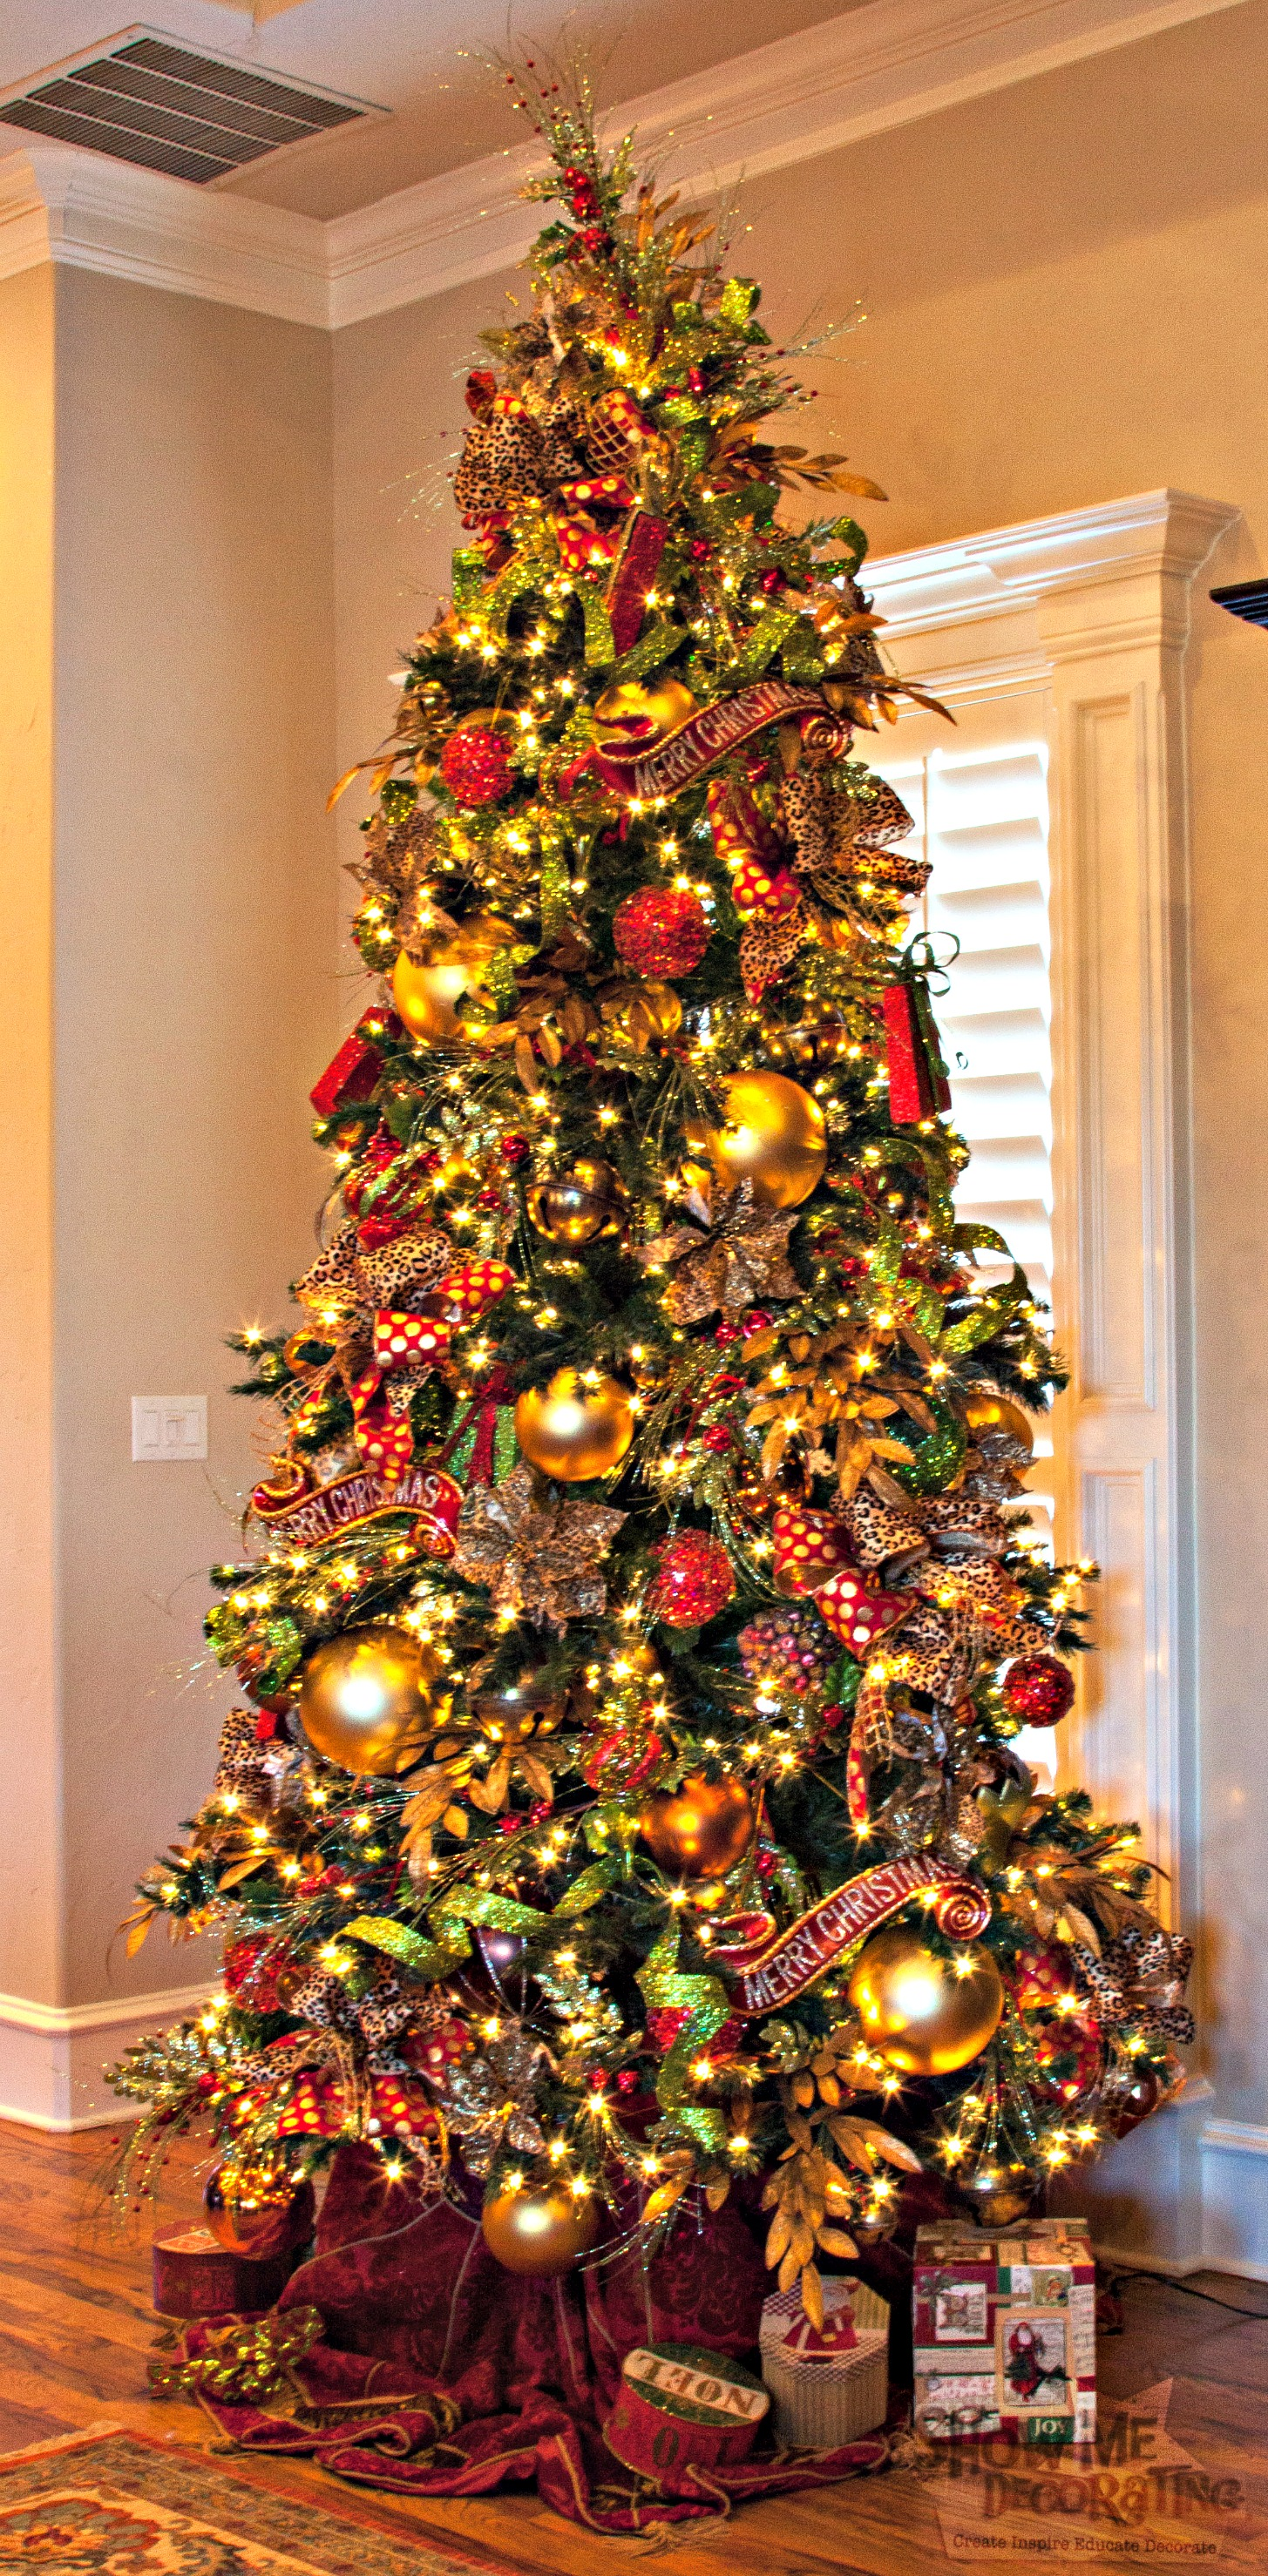 Christmas tree theme show me decorating Christmas tree ornaments ideas